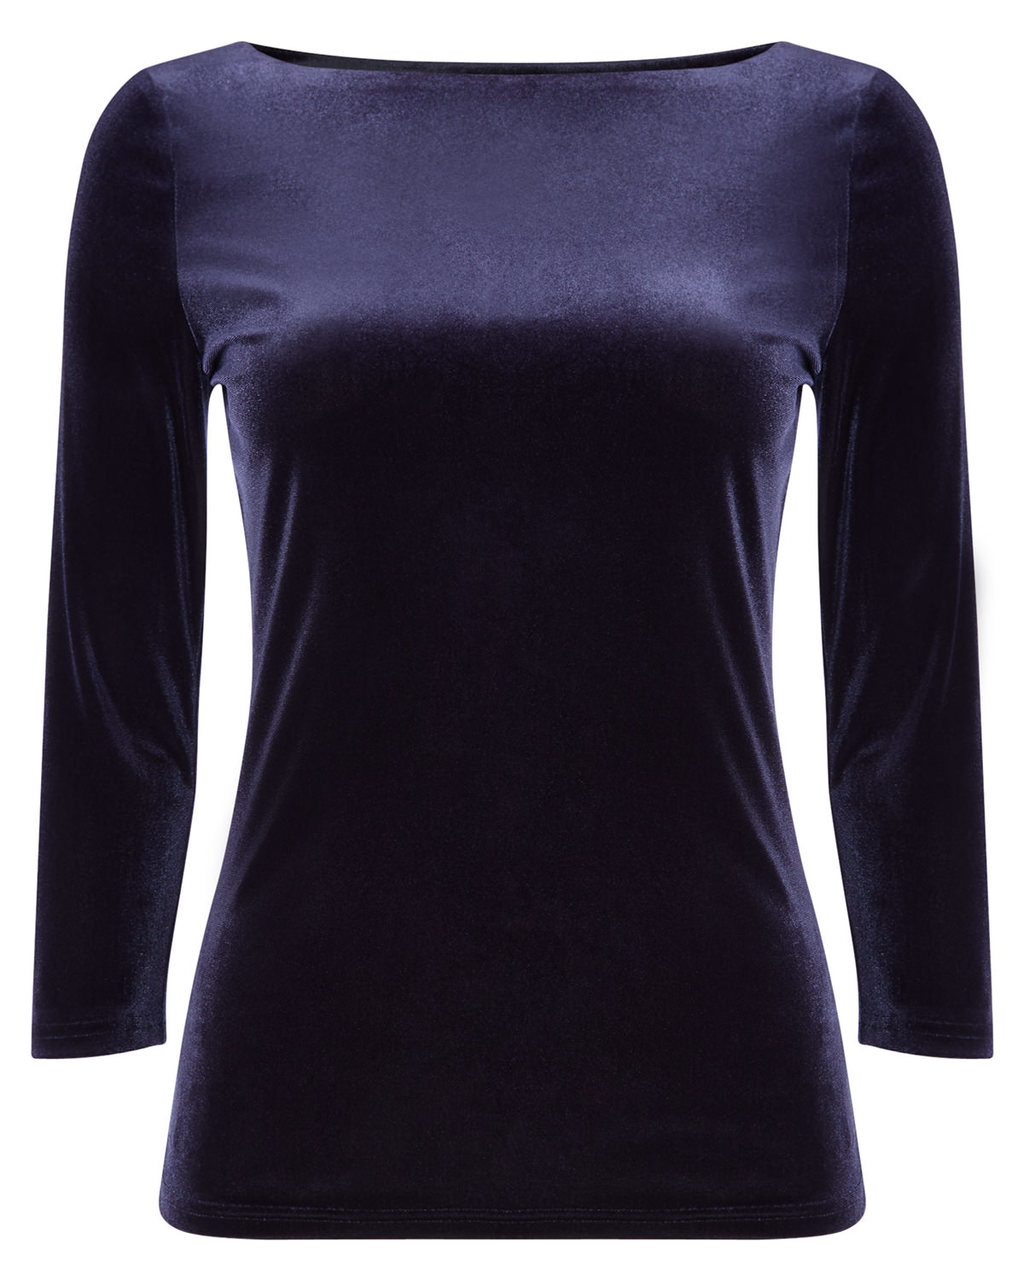 Ismay Velvet Top - neckline: slash/boat neckline; pattern: plain; predominant colour: navy; occasions: casual, evening, creative work; length: standard; style: top; fit: body skimming; sleeve length: 3/4 length; sleeve style: standard; pattern type: fabric; texture group: velvet/fabrics with pile; season: a/w 2015